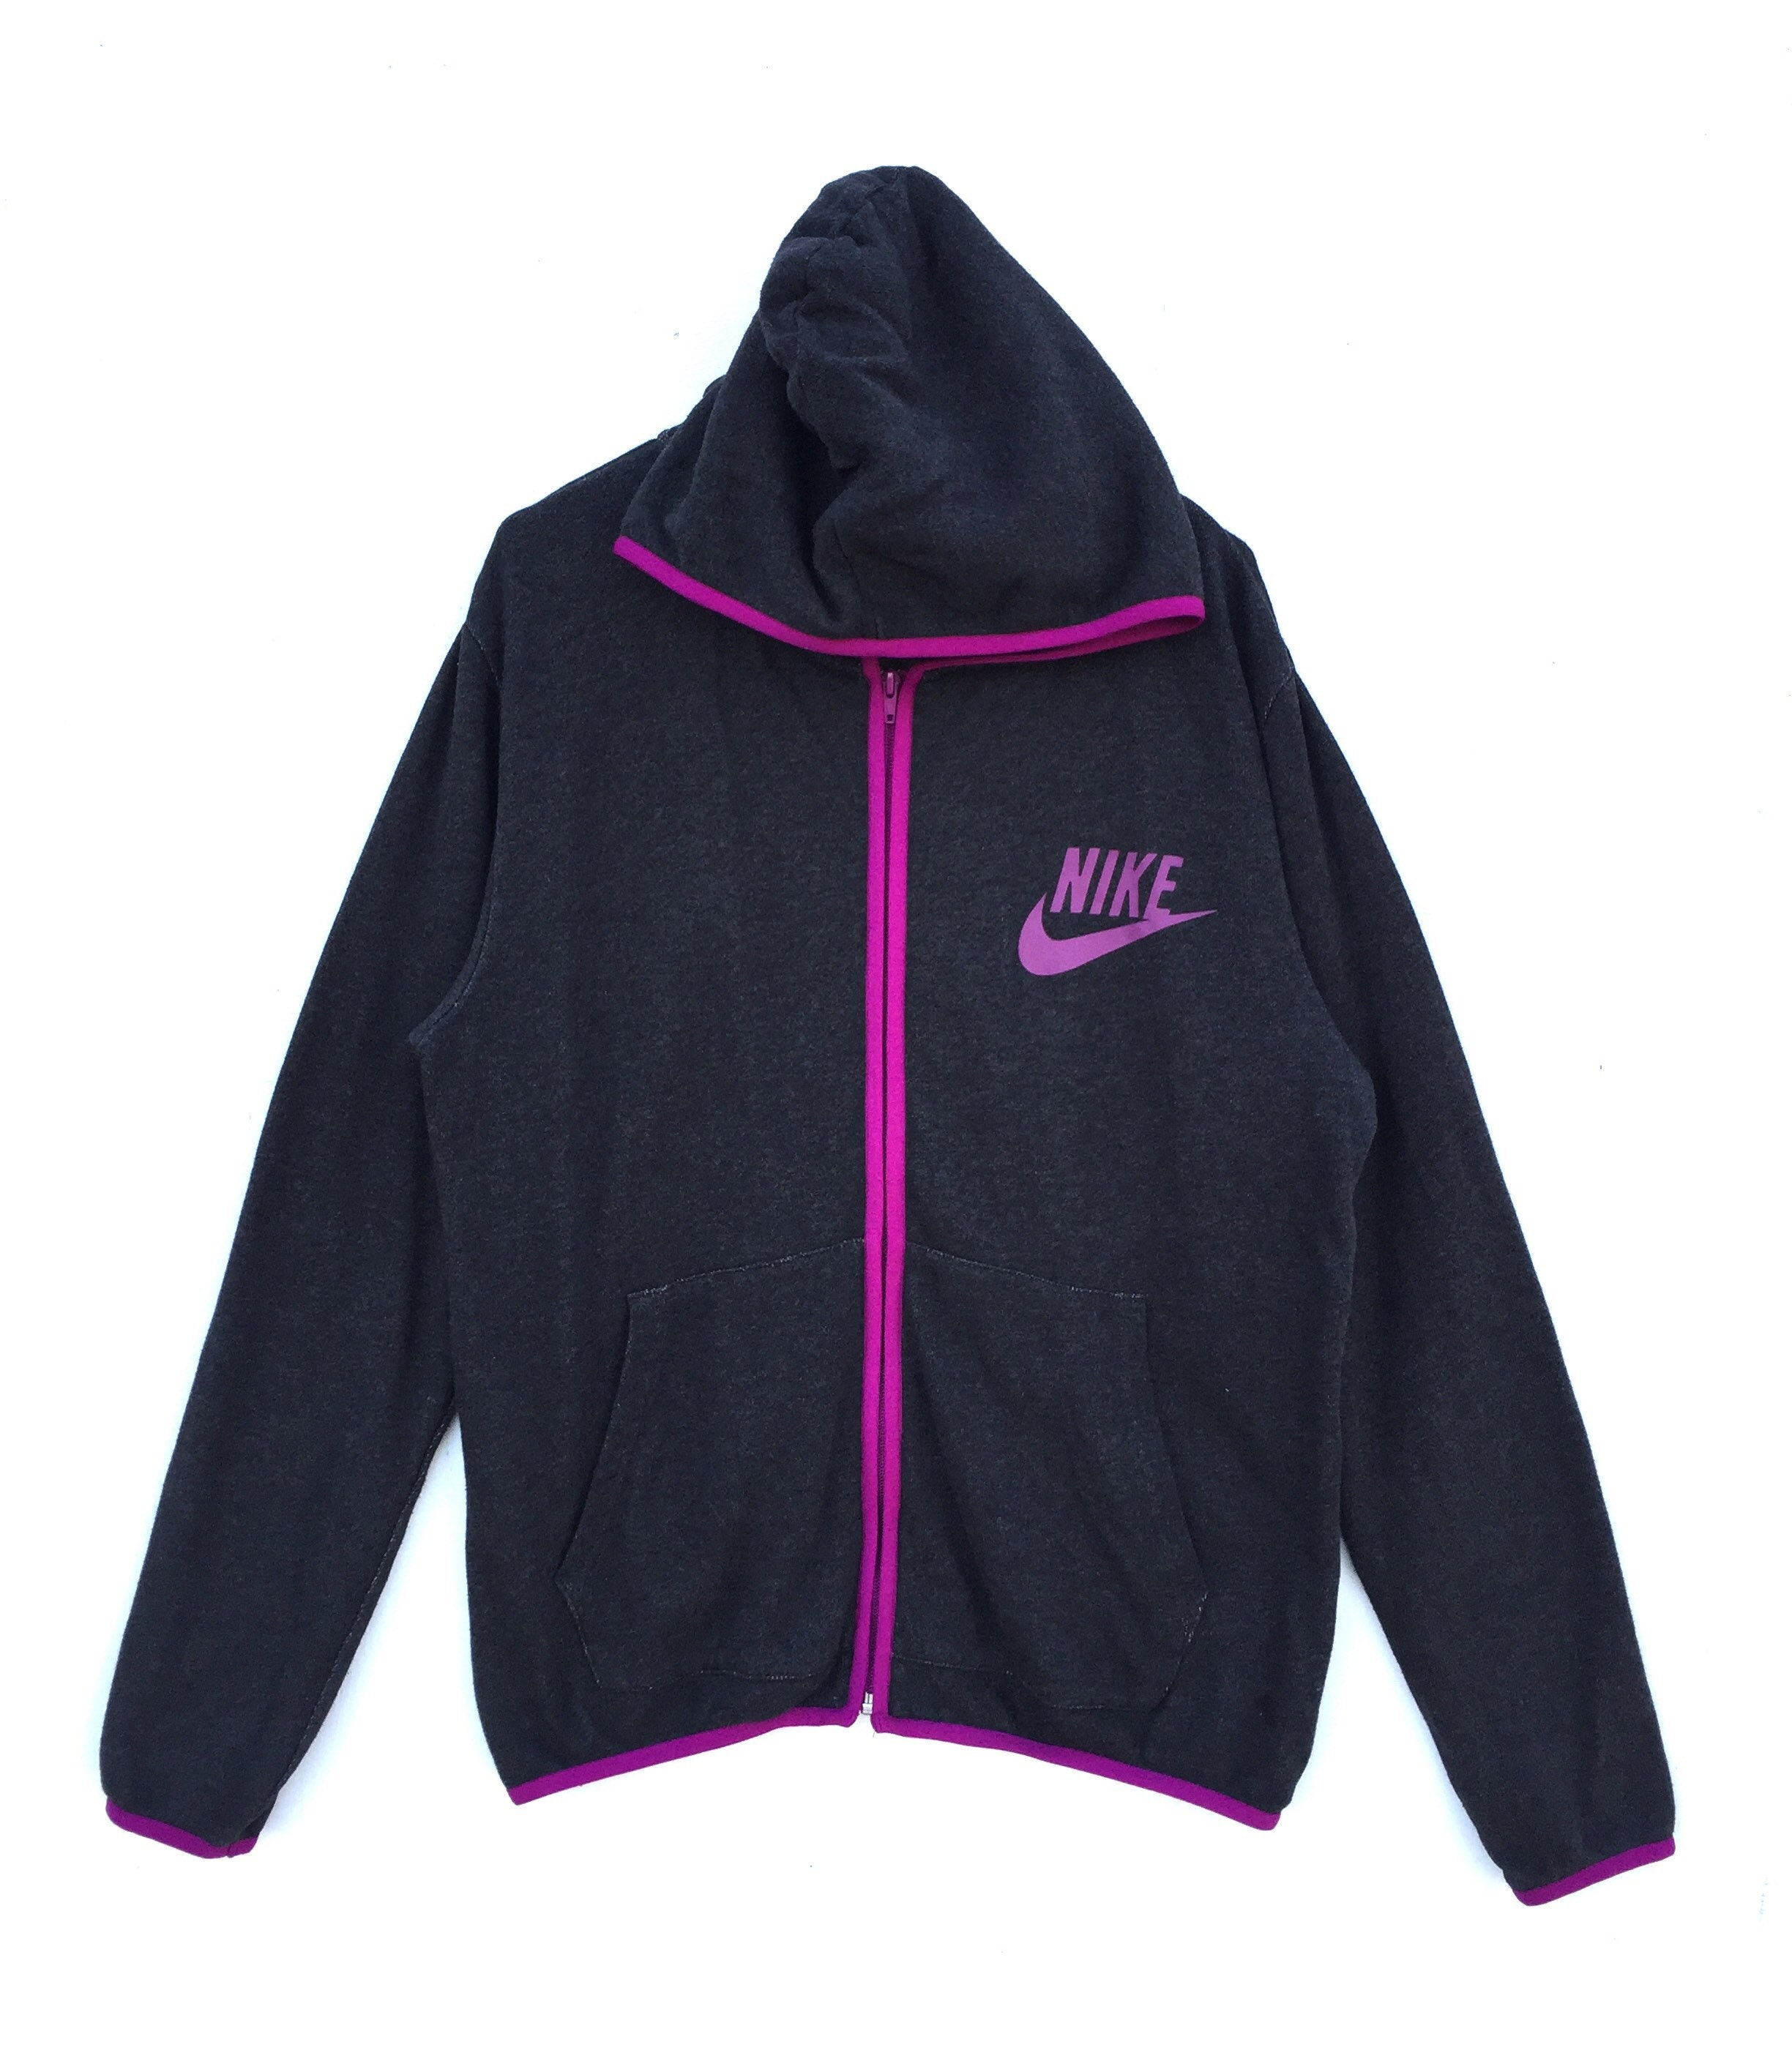 fc28de4bb3d7 Authentic Pink NIKE Swoosh Track Sport Small Logo Hoodies